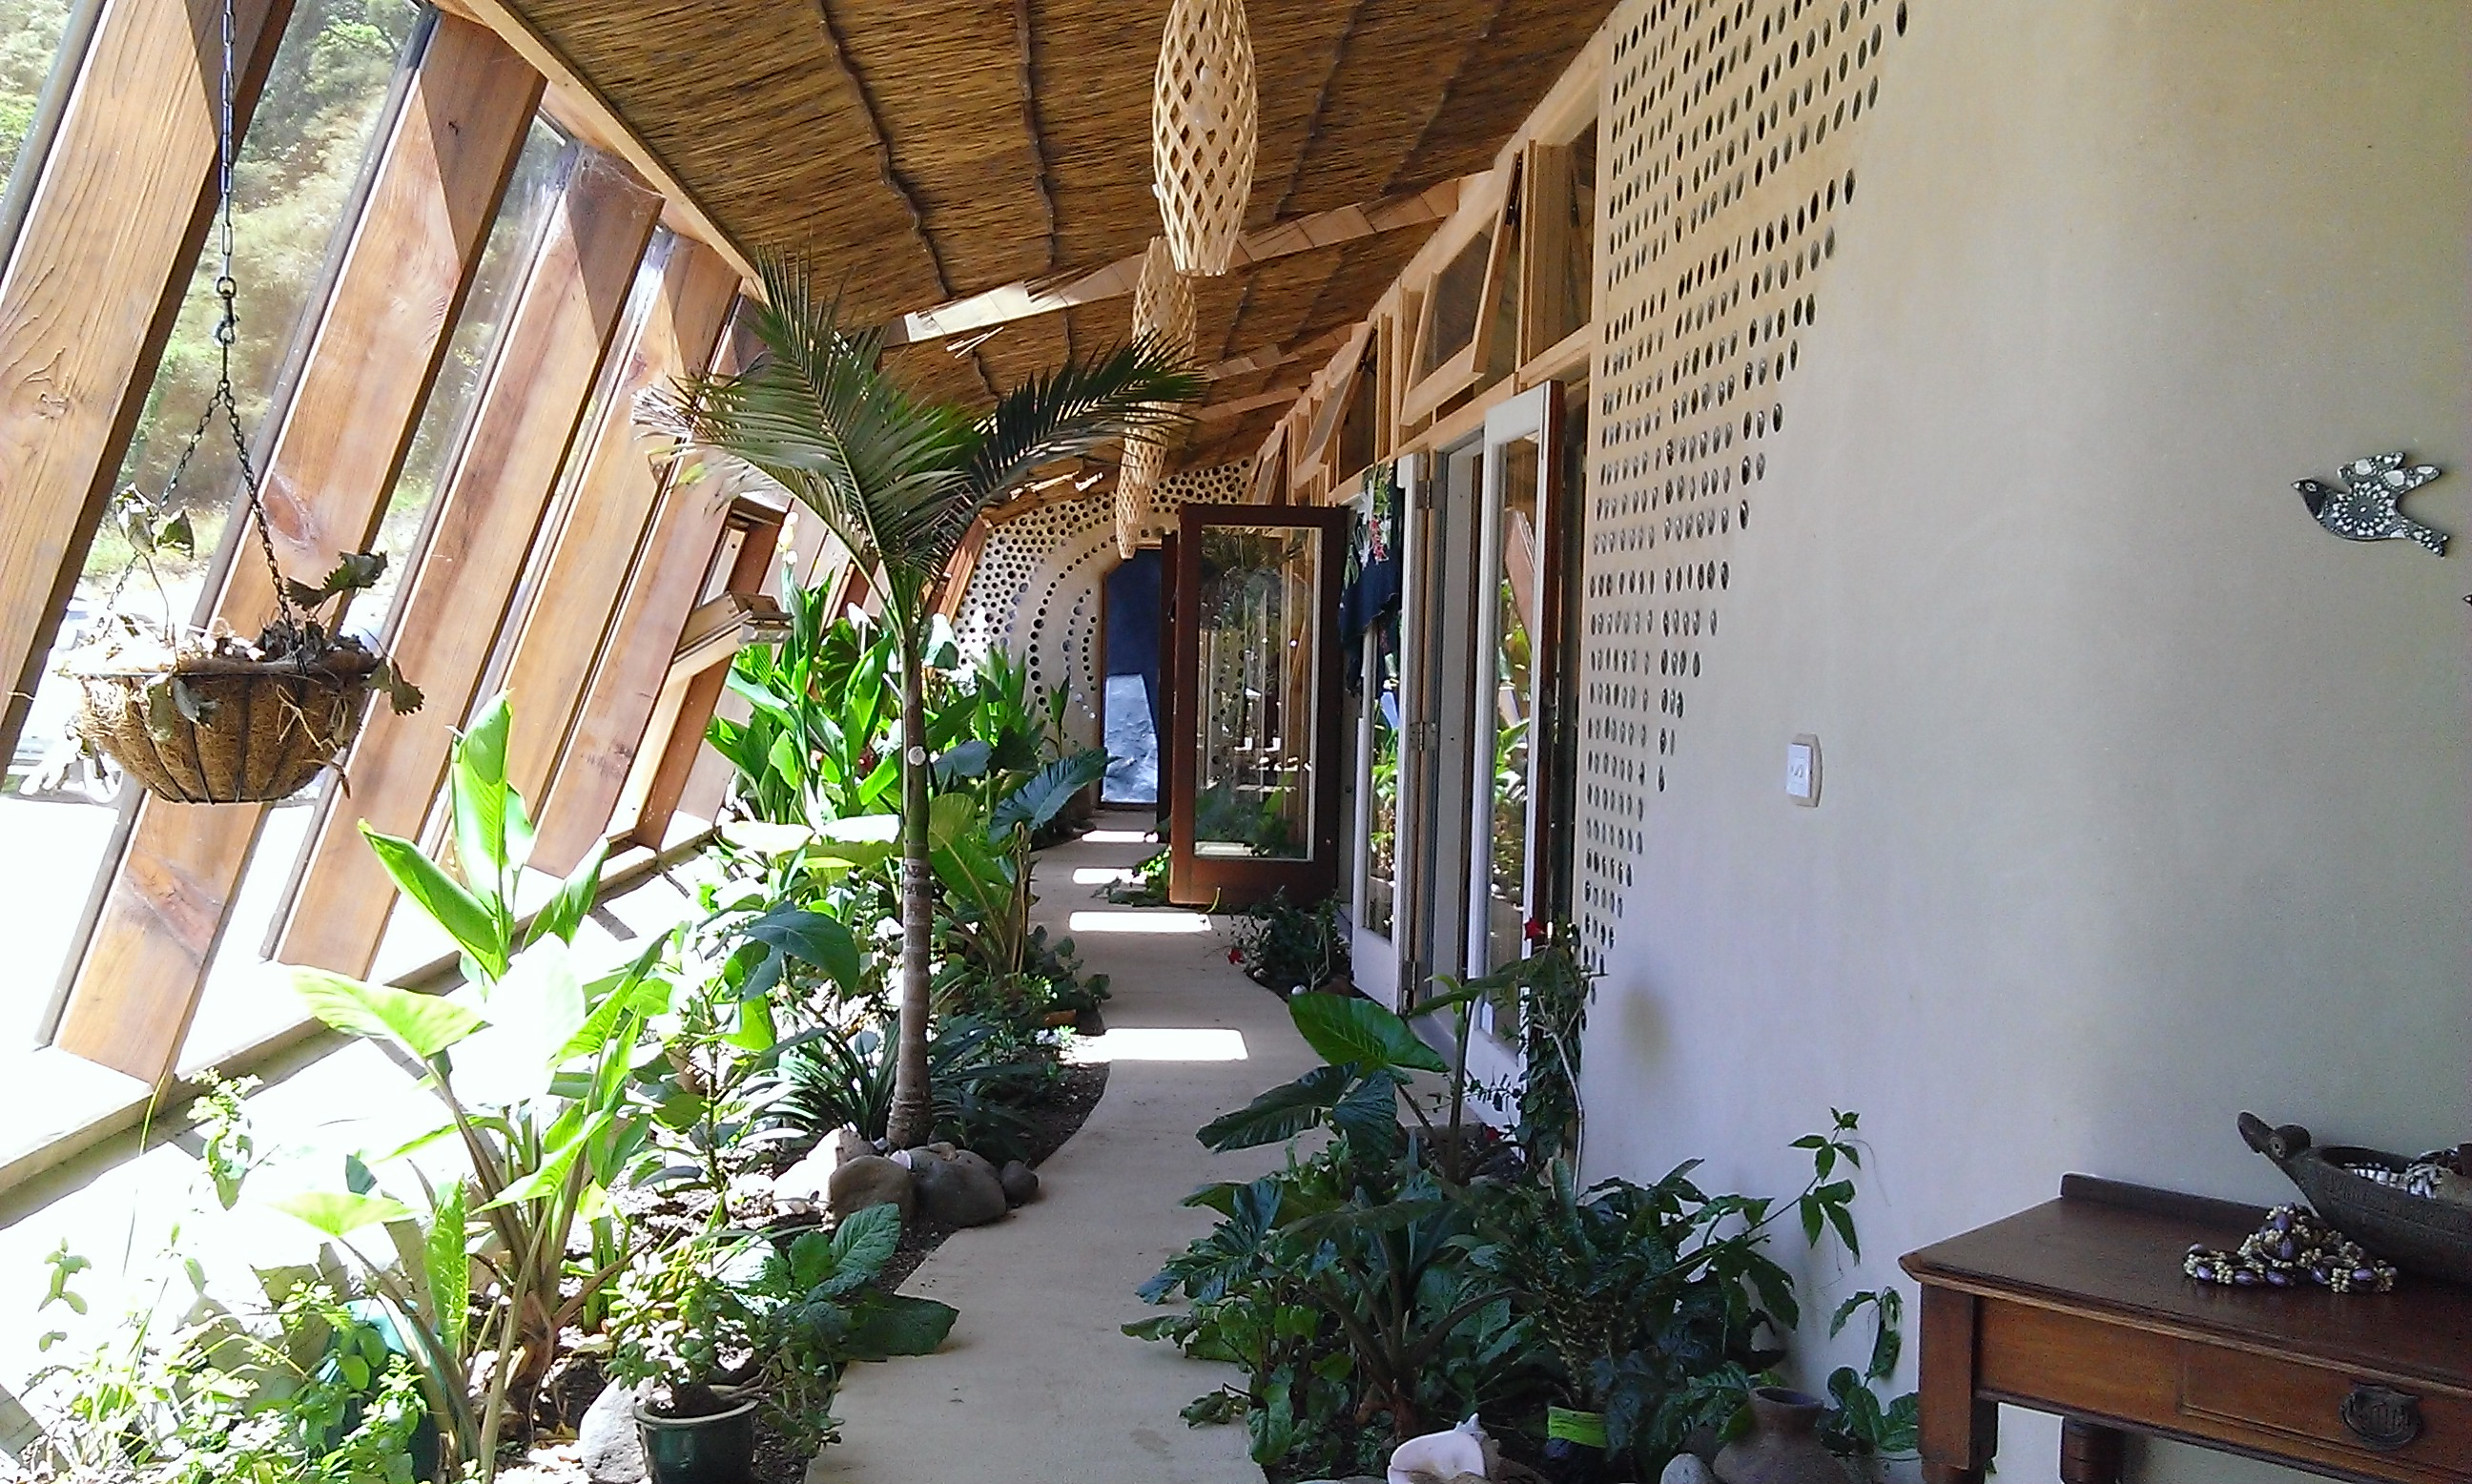 Gus and Sarah's earthship